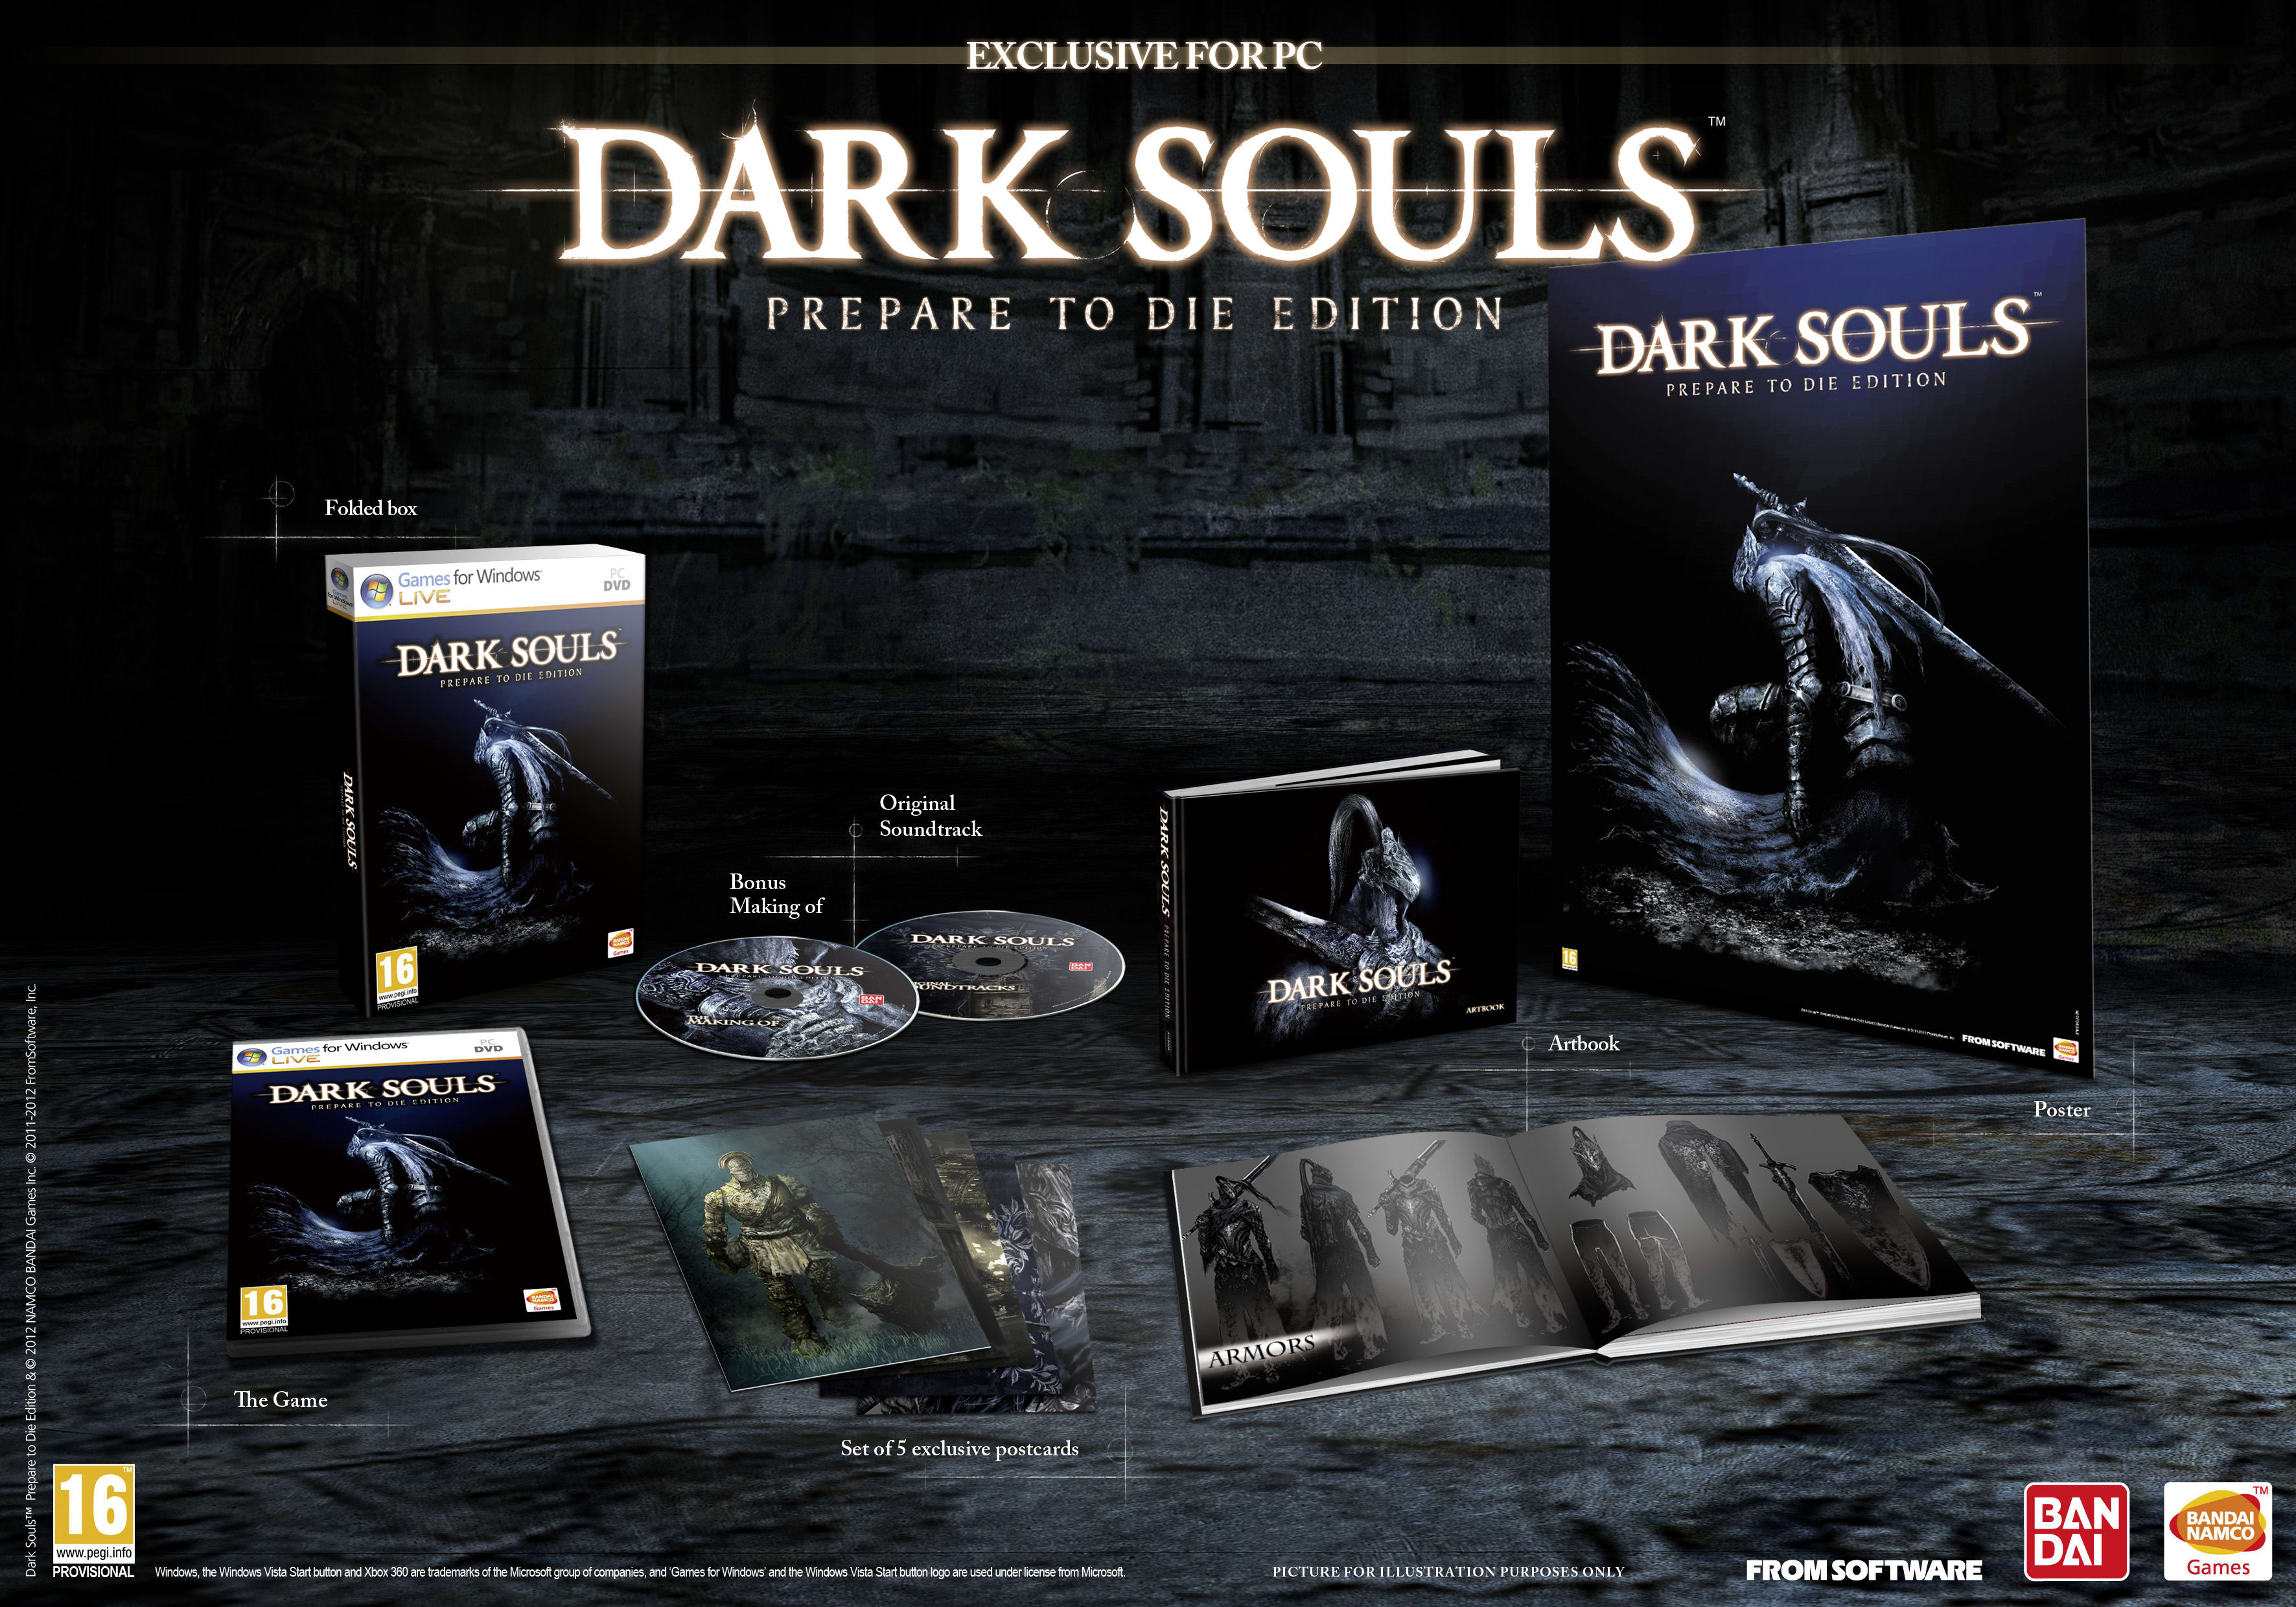 Dark Souls: Prepare to Die Edition on PC at GAME